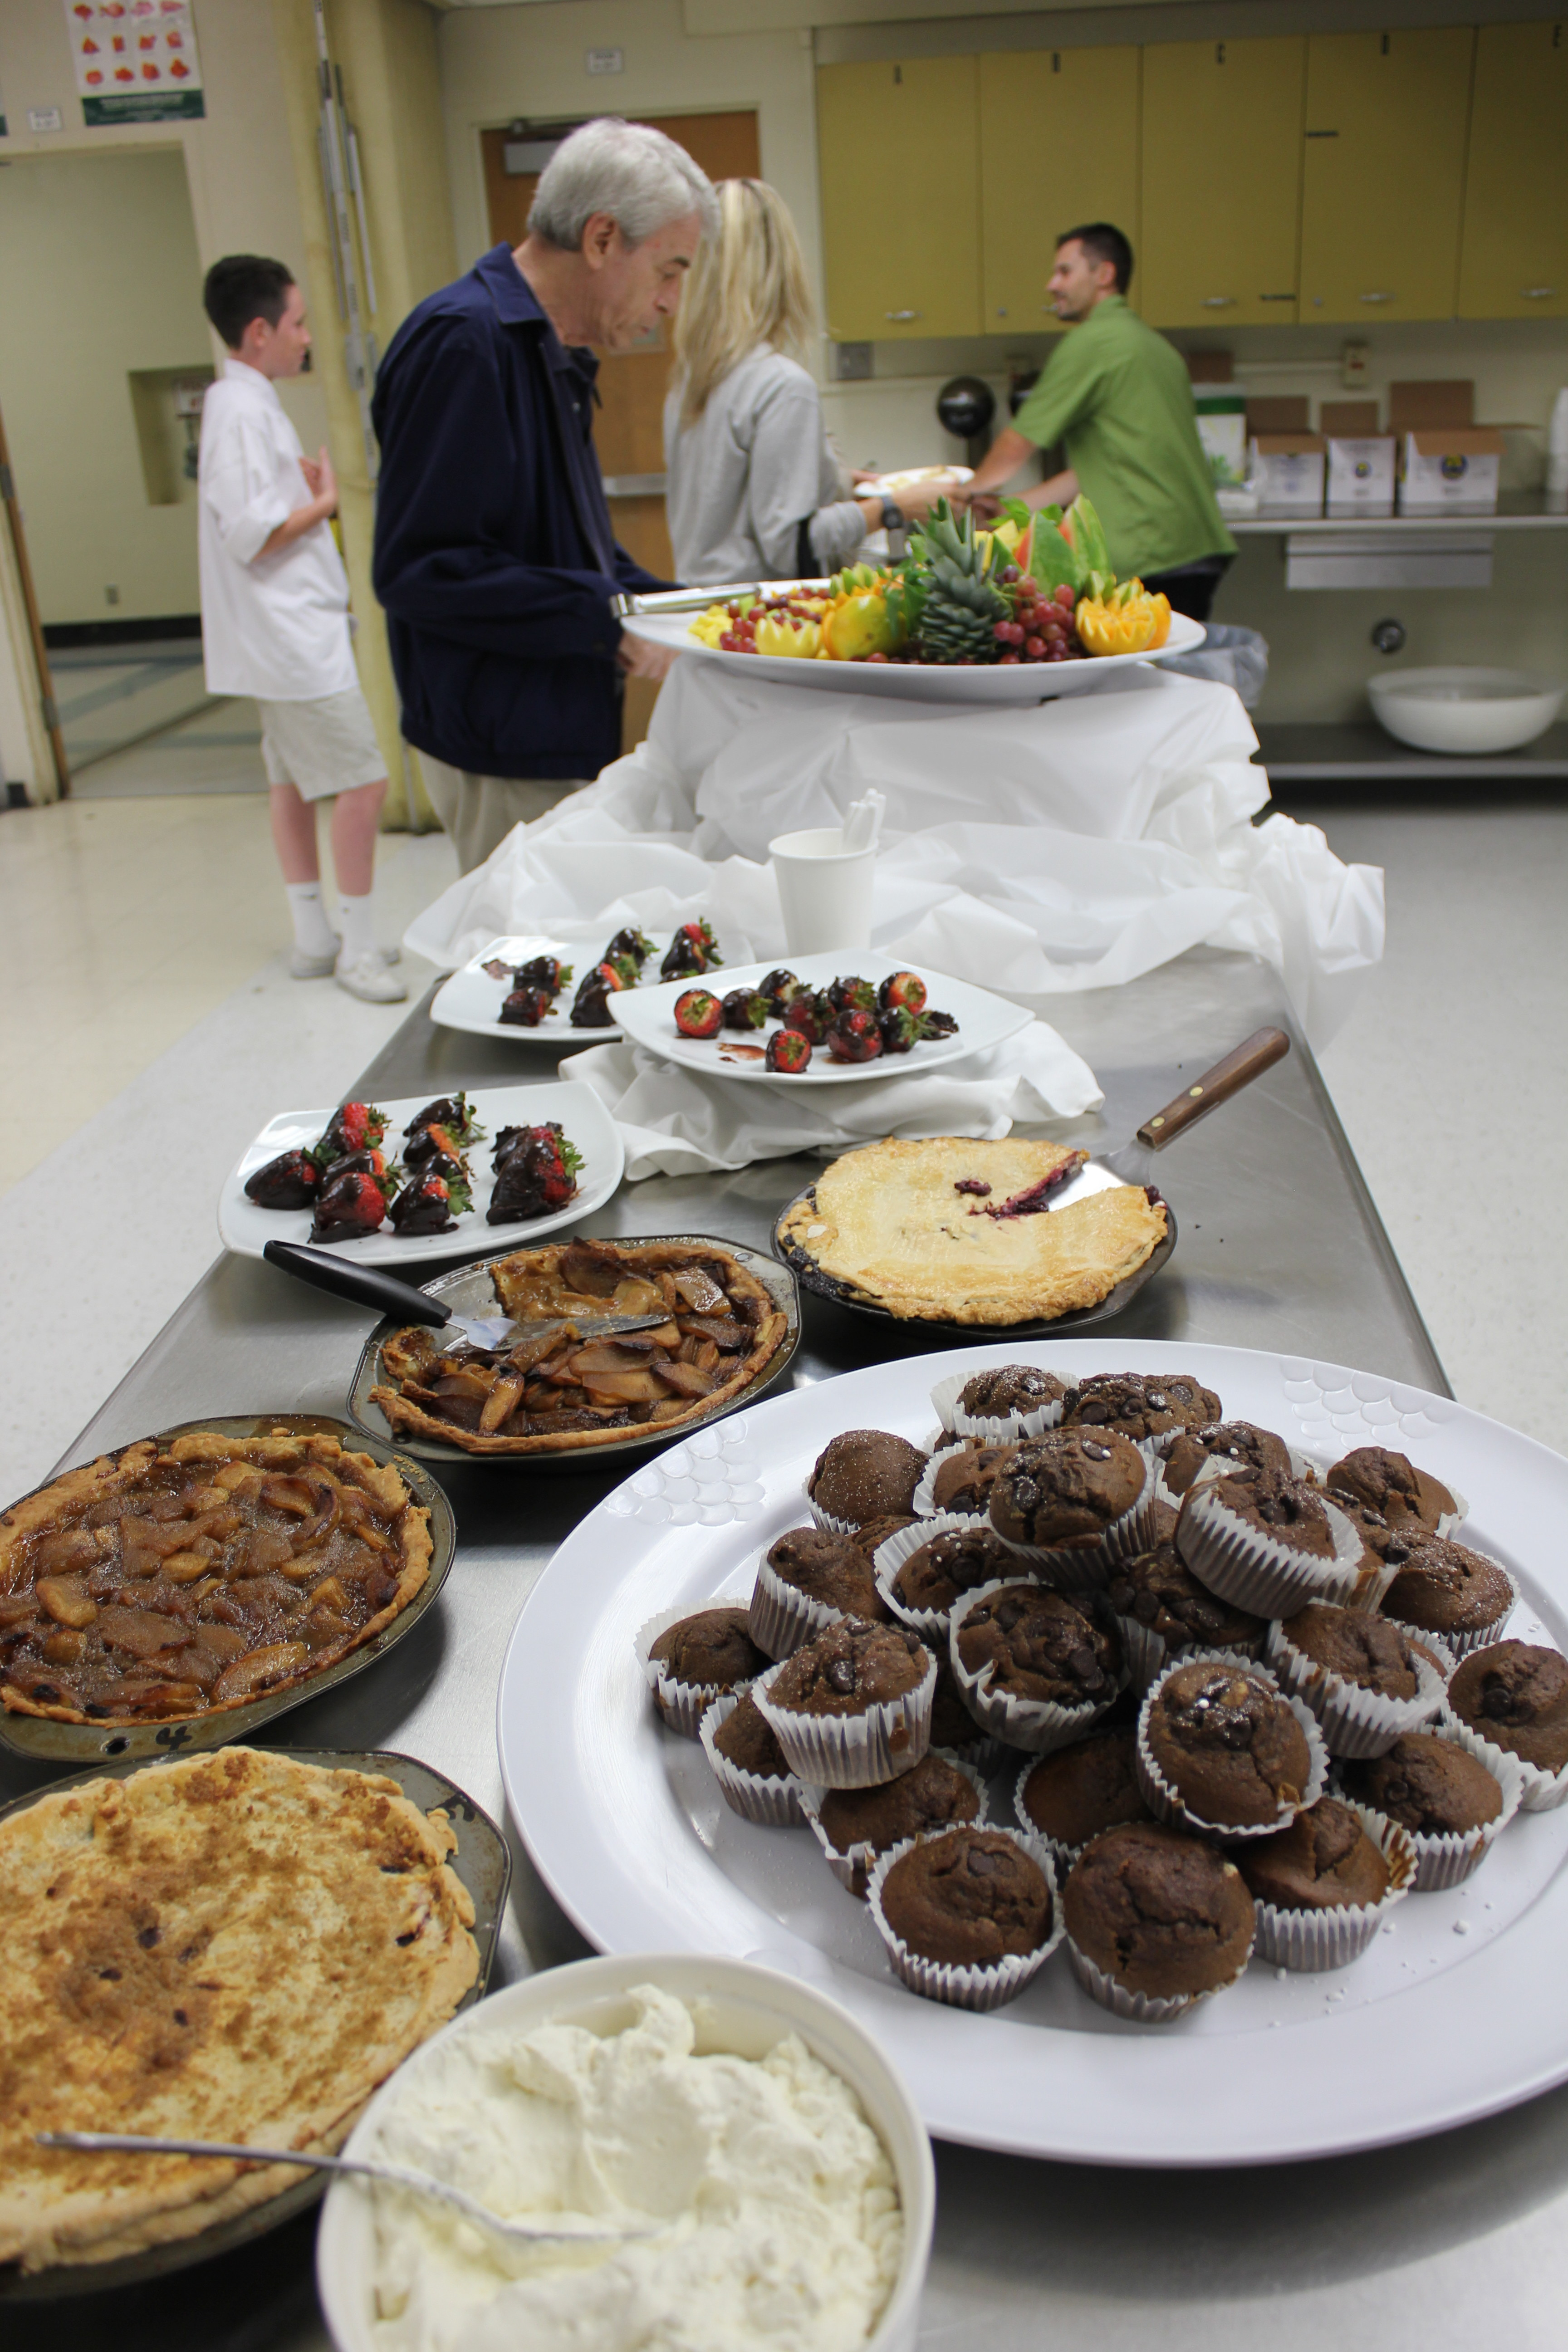 Cooking class welcomes parents with delicious treats made by students.